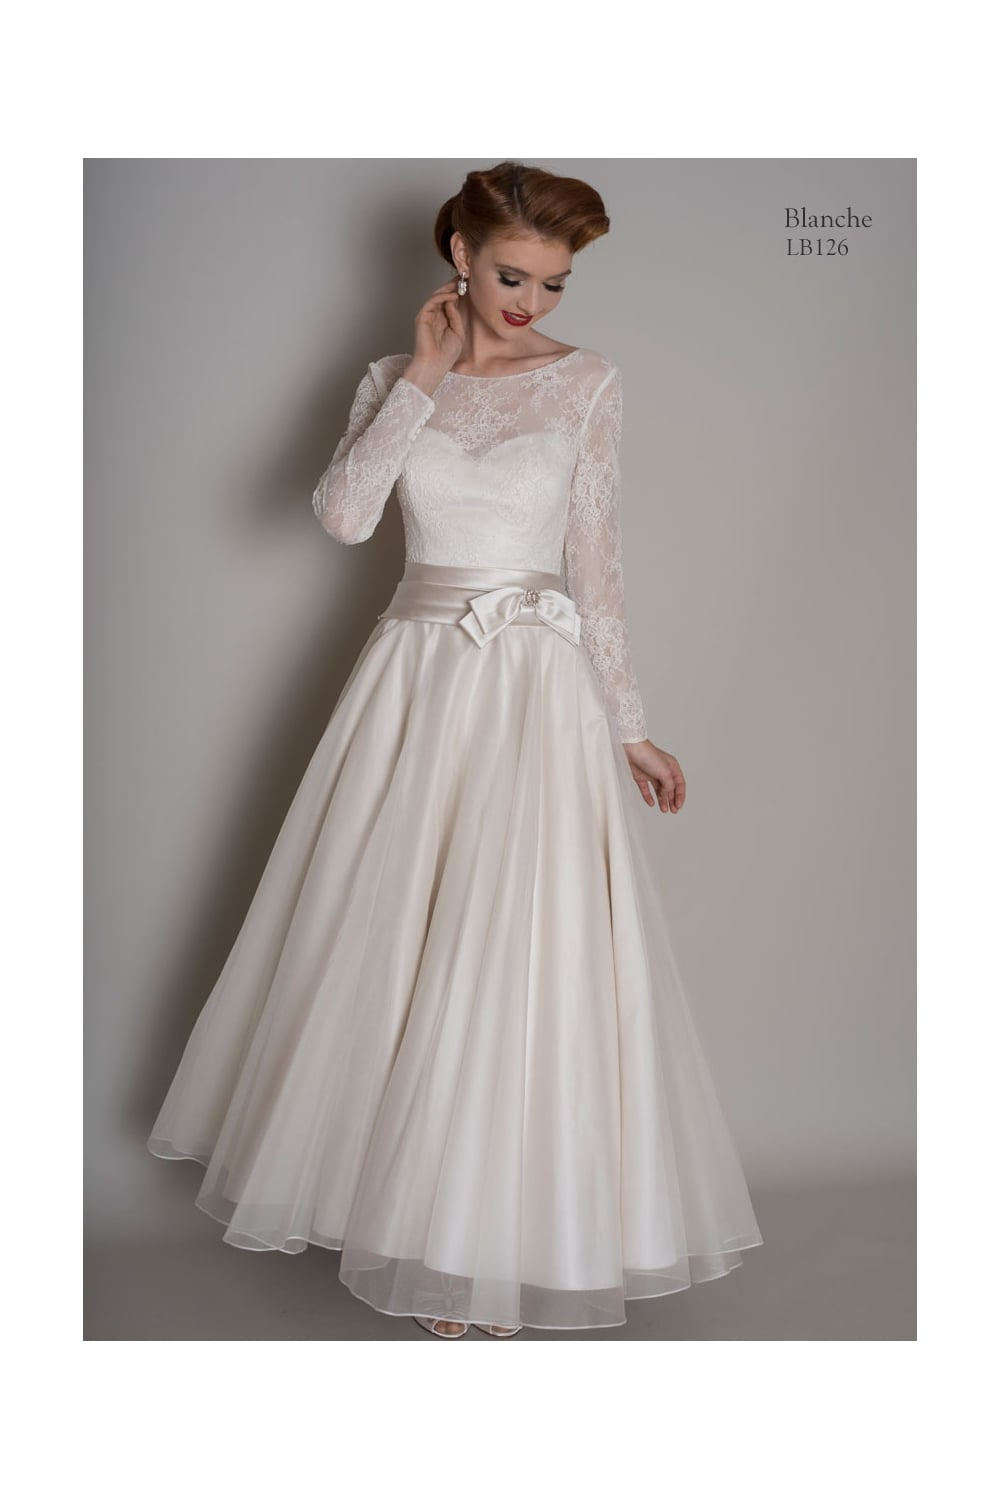 Loulou blanche calf length short vintage wedding dress for Calf length wedding dresses